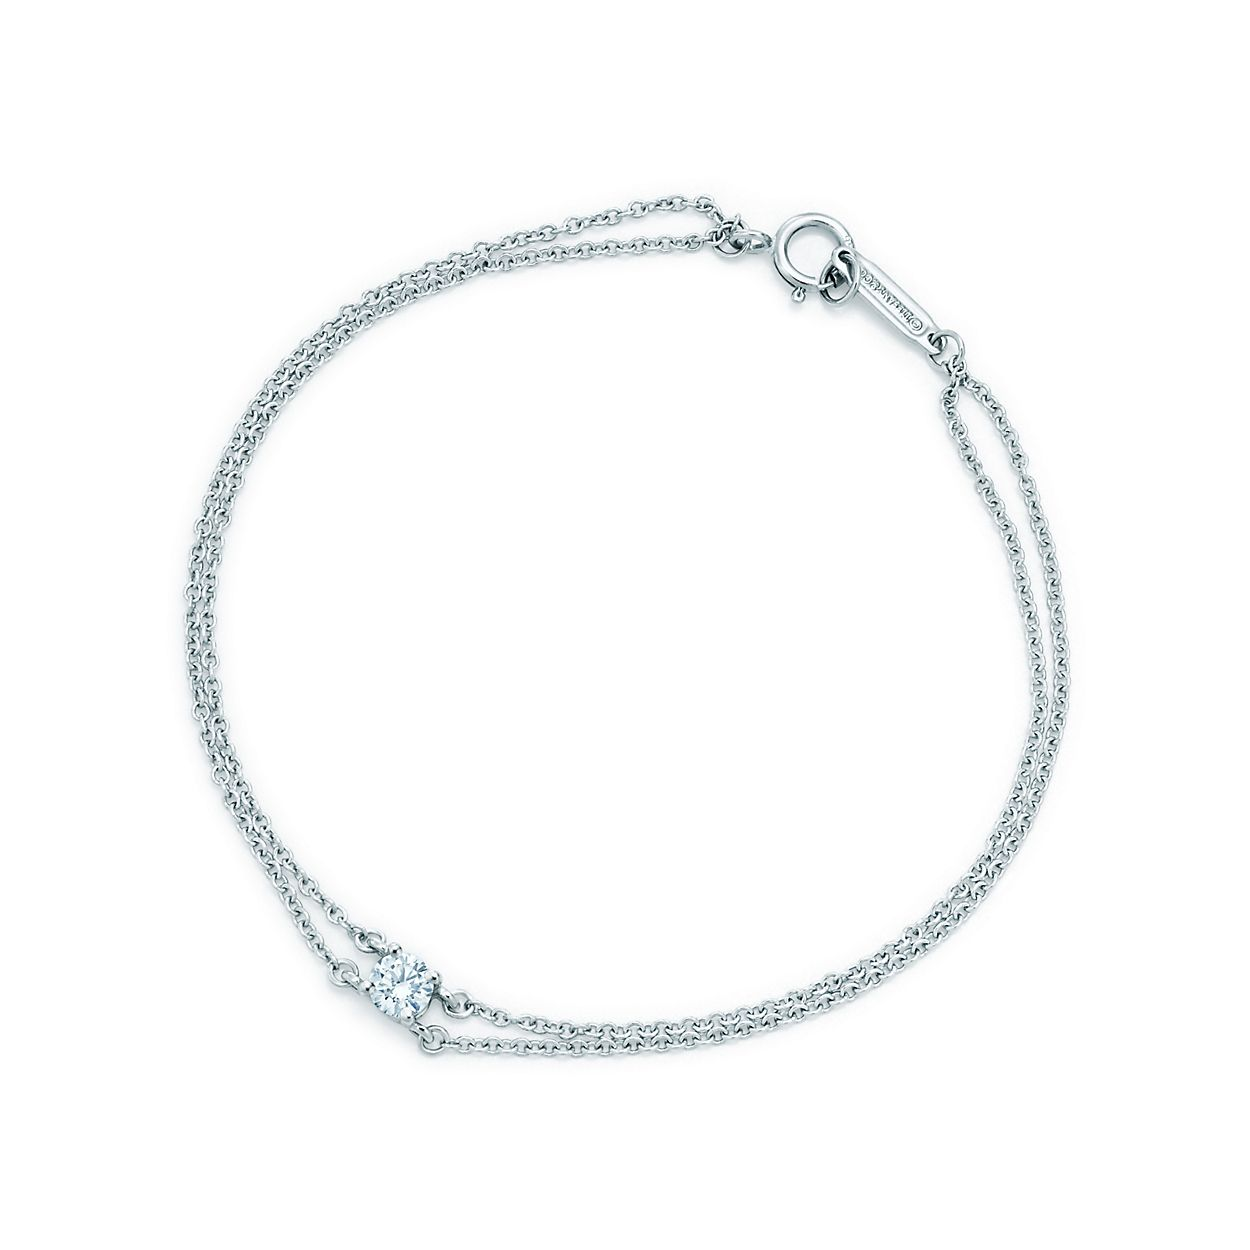 Tiffany Hearts bracelet in platinum with diamonds - Size 6.25 IN Tiffany & Co. GKfpxZ